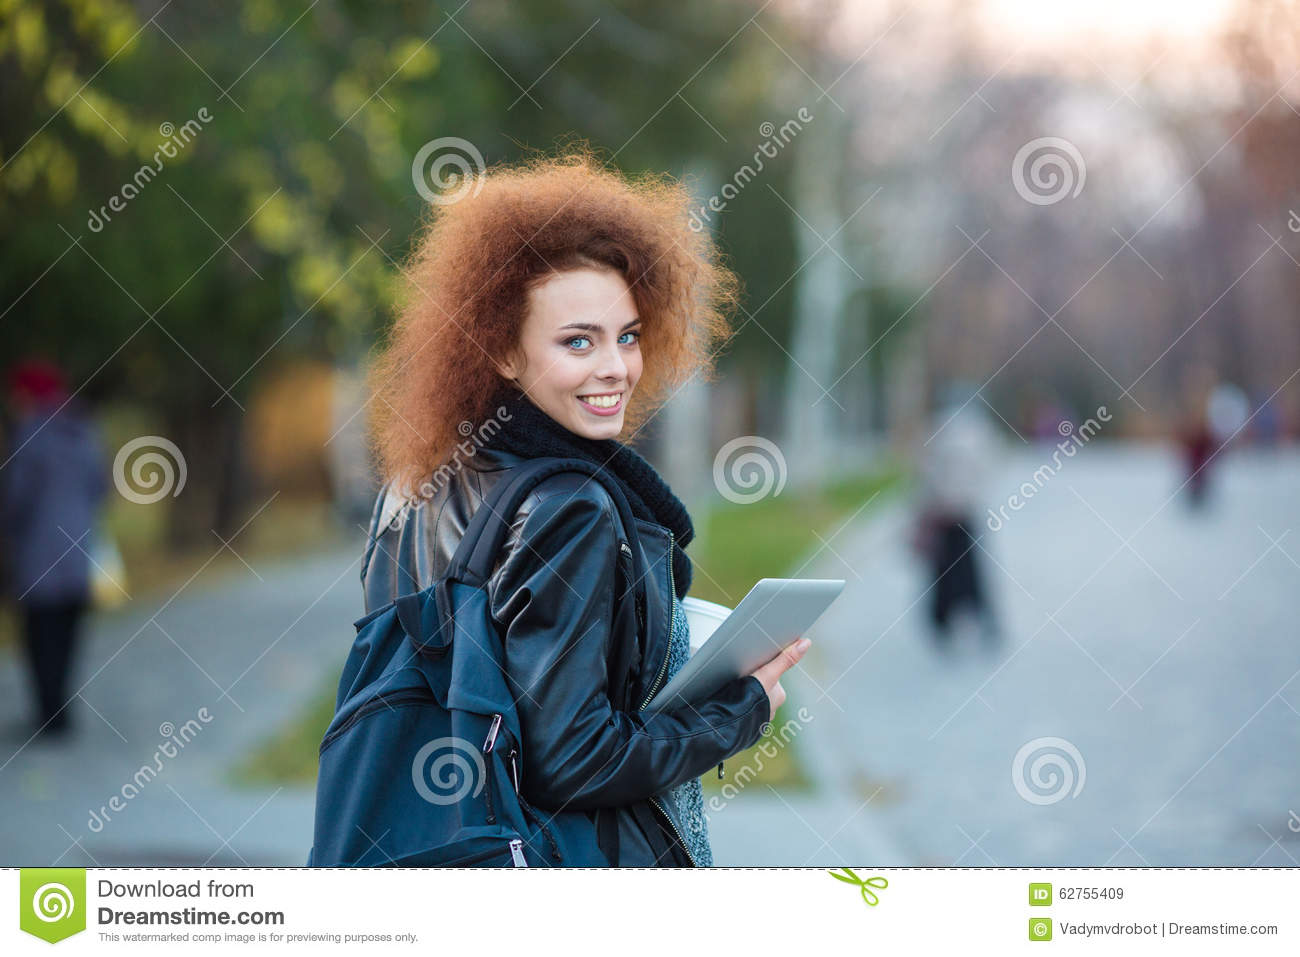 b8e282f6608 Female Student Looking Back At Camera Stock Image - Image of beauty ...